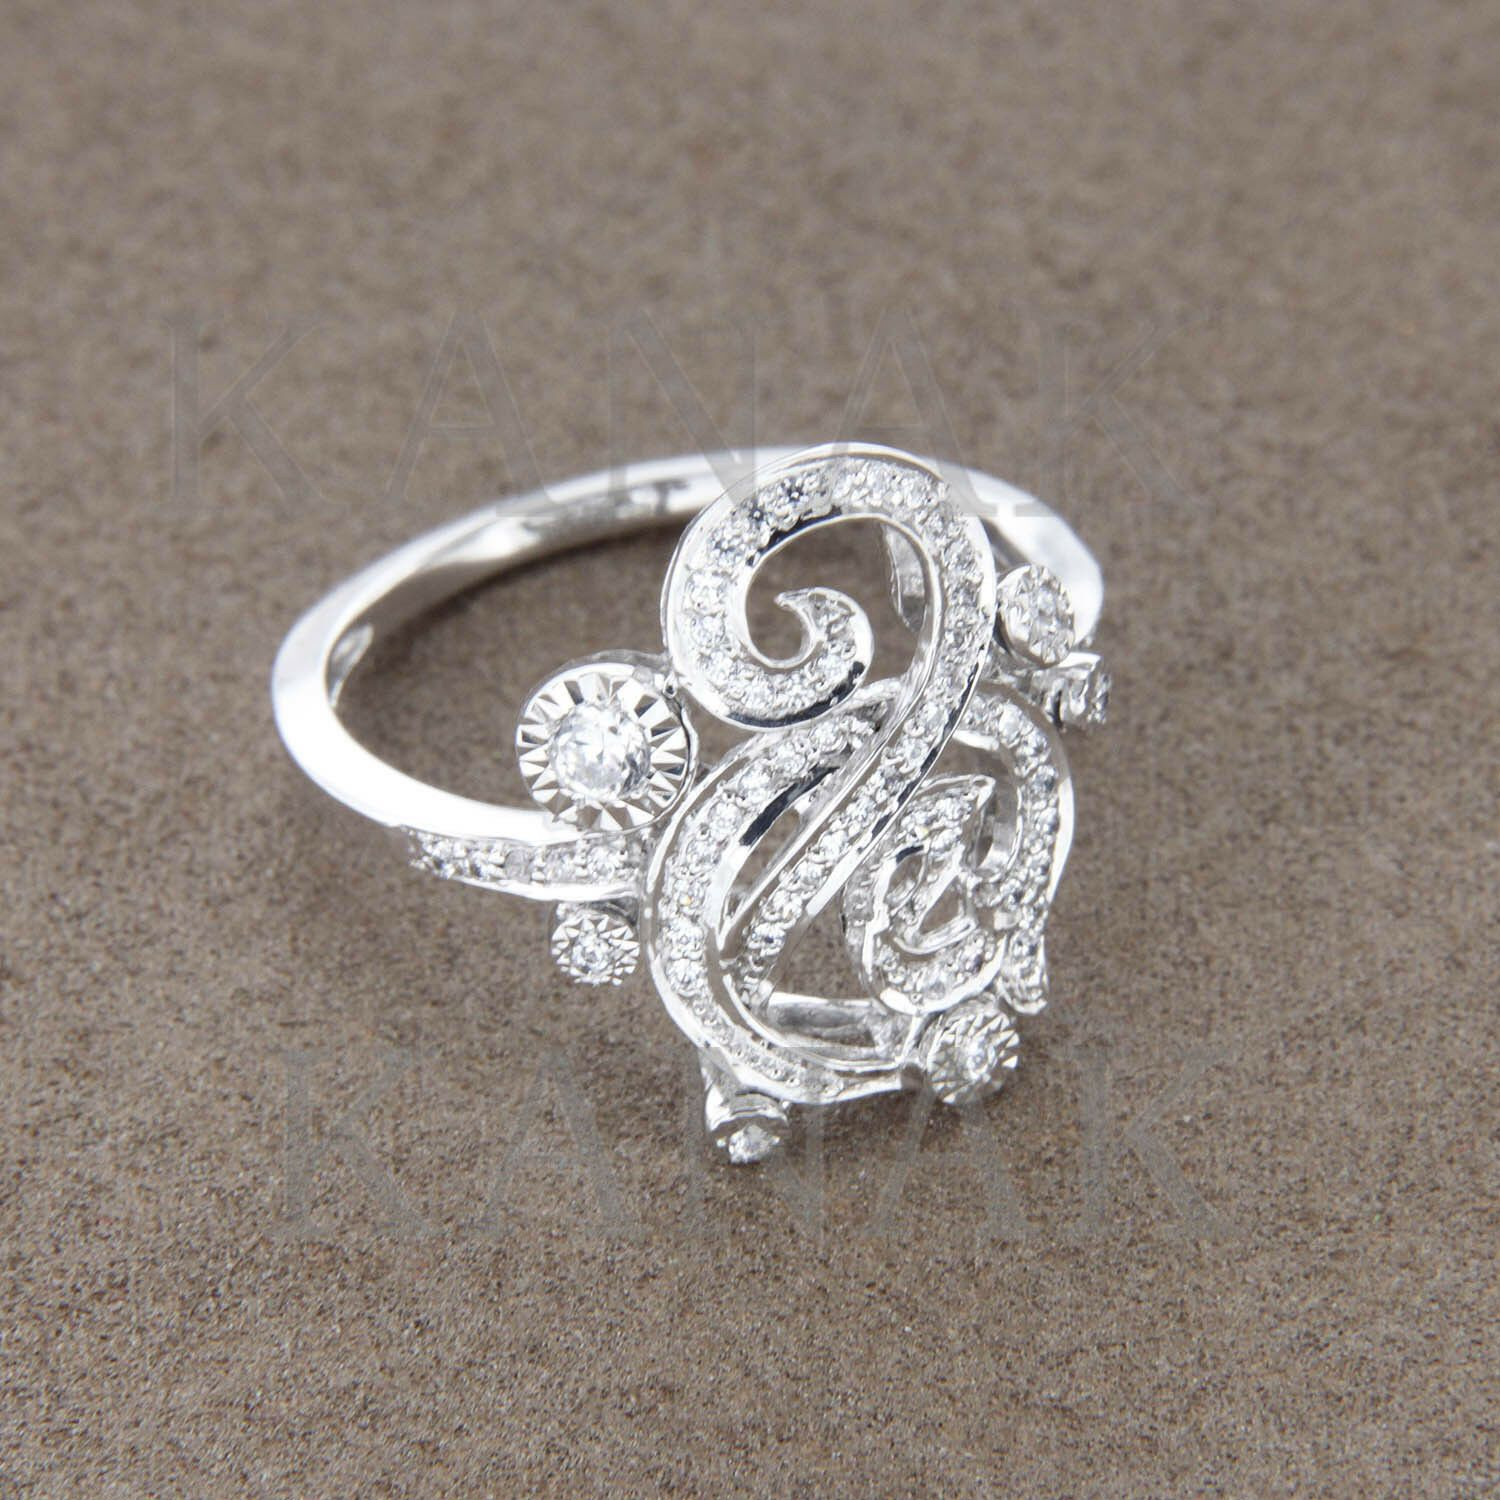 0.34 ct Round Cut Natural Diamond Womens Fashion Ring in 14K Solid White Gold